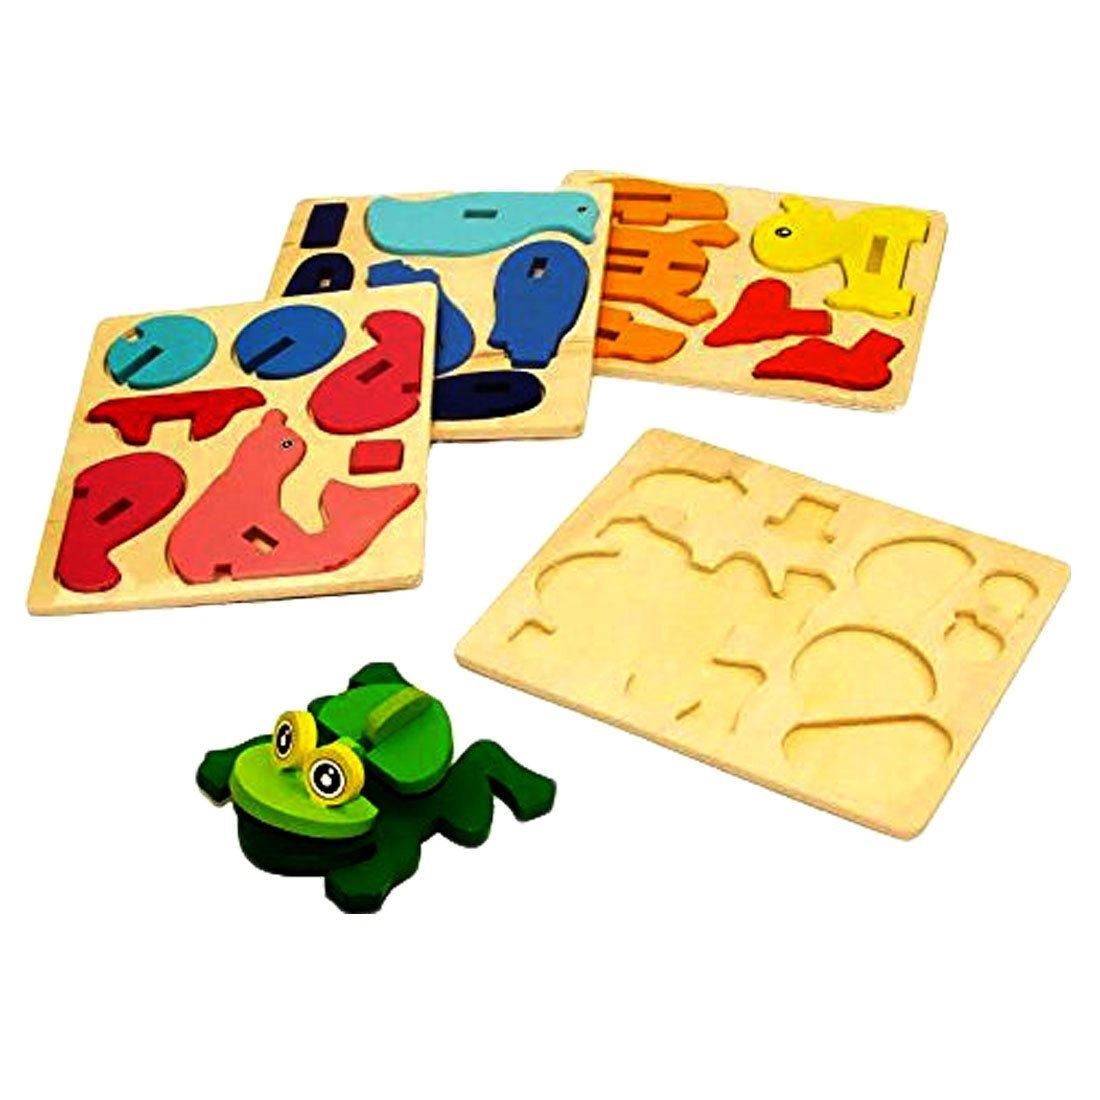 3D Wooden Sea Animals Assembly Toy - 4 pack Assorted DIY Sea Animals Wooden Puzzle Arts and Crafts Activity Set of 4 Wooden Amphibious Animals Stacking Toys